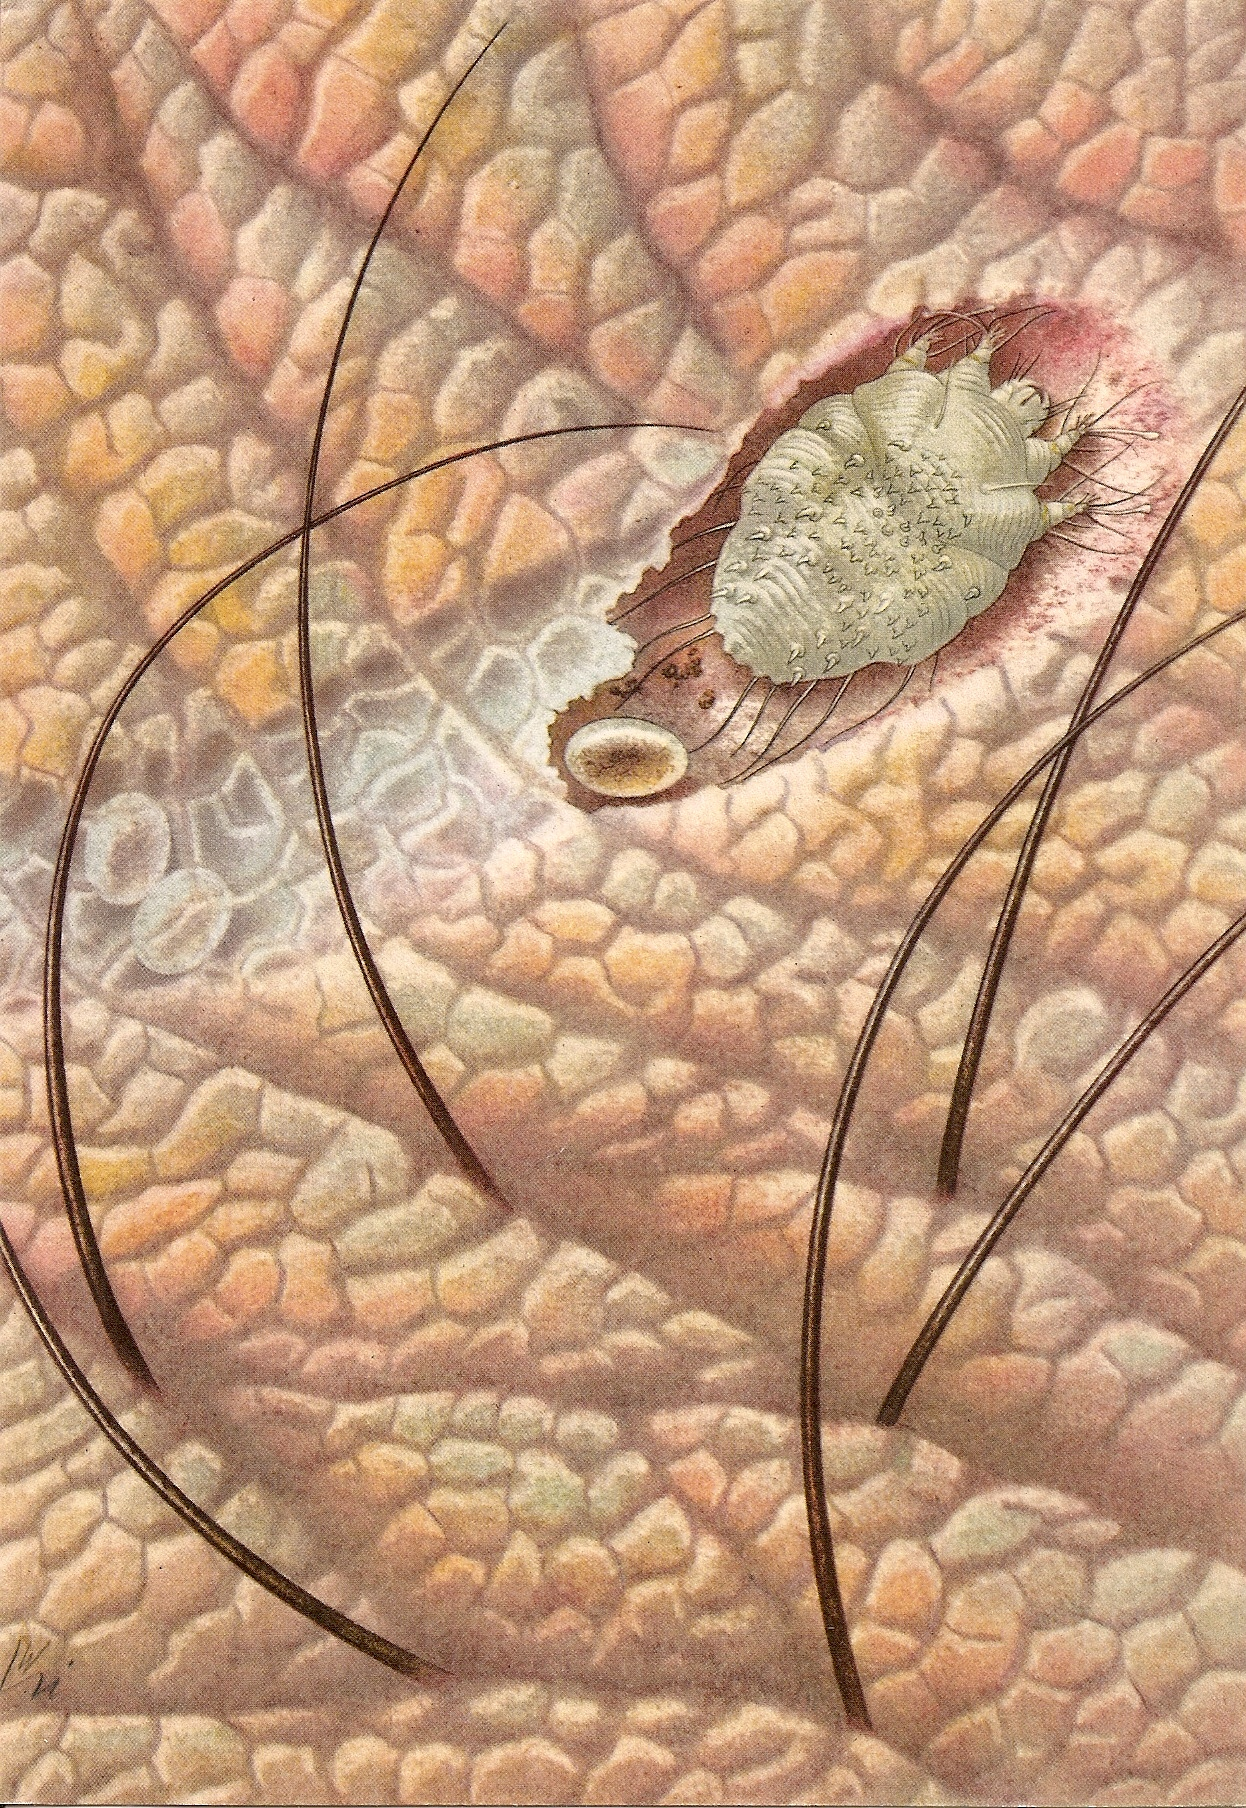 About lice scabies pubic lice  THE BEST CONTROL